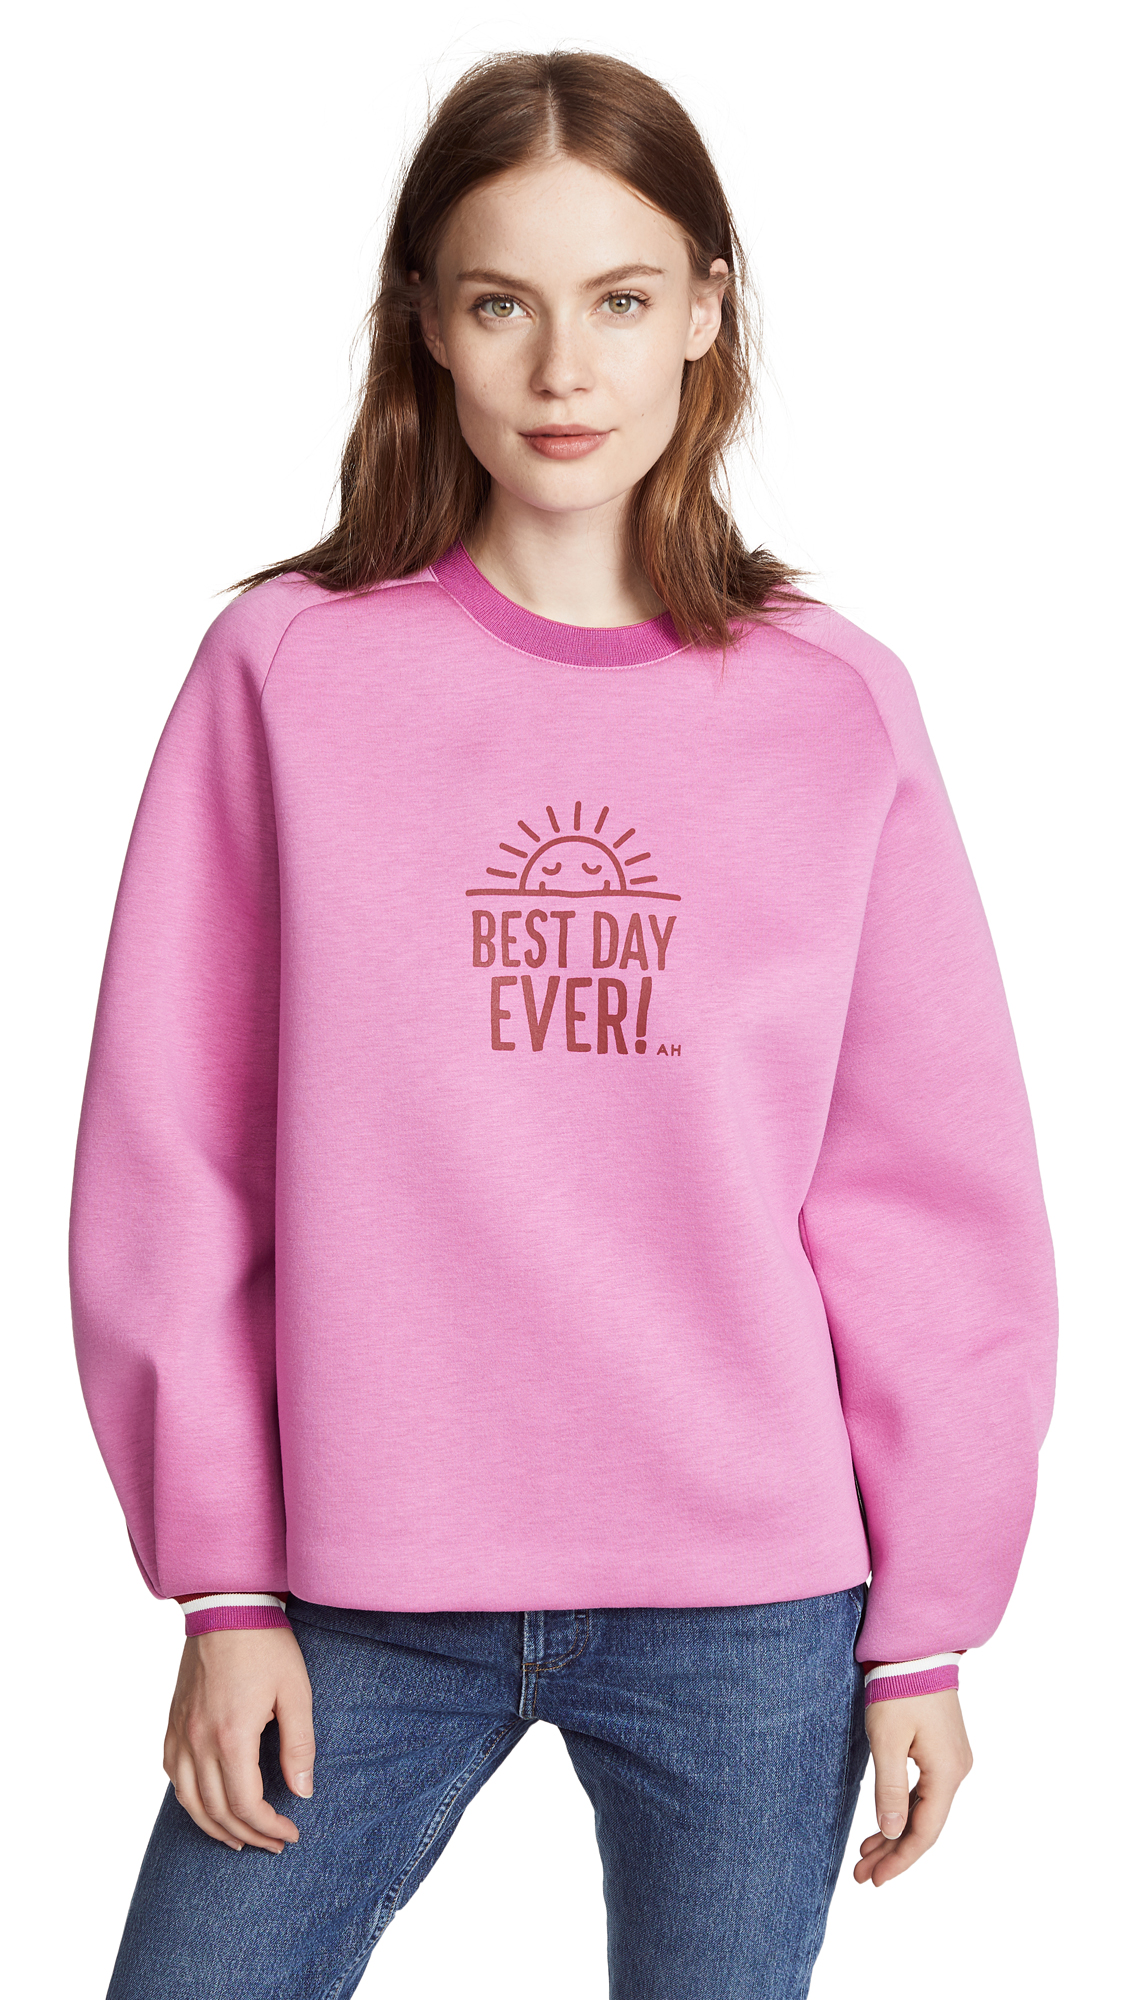 Anya Hindmarch Best Day Ever Sweatshirt In Bubblegum/Claret